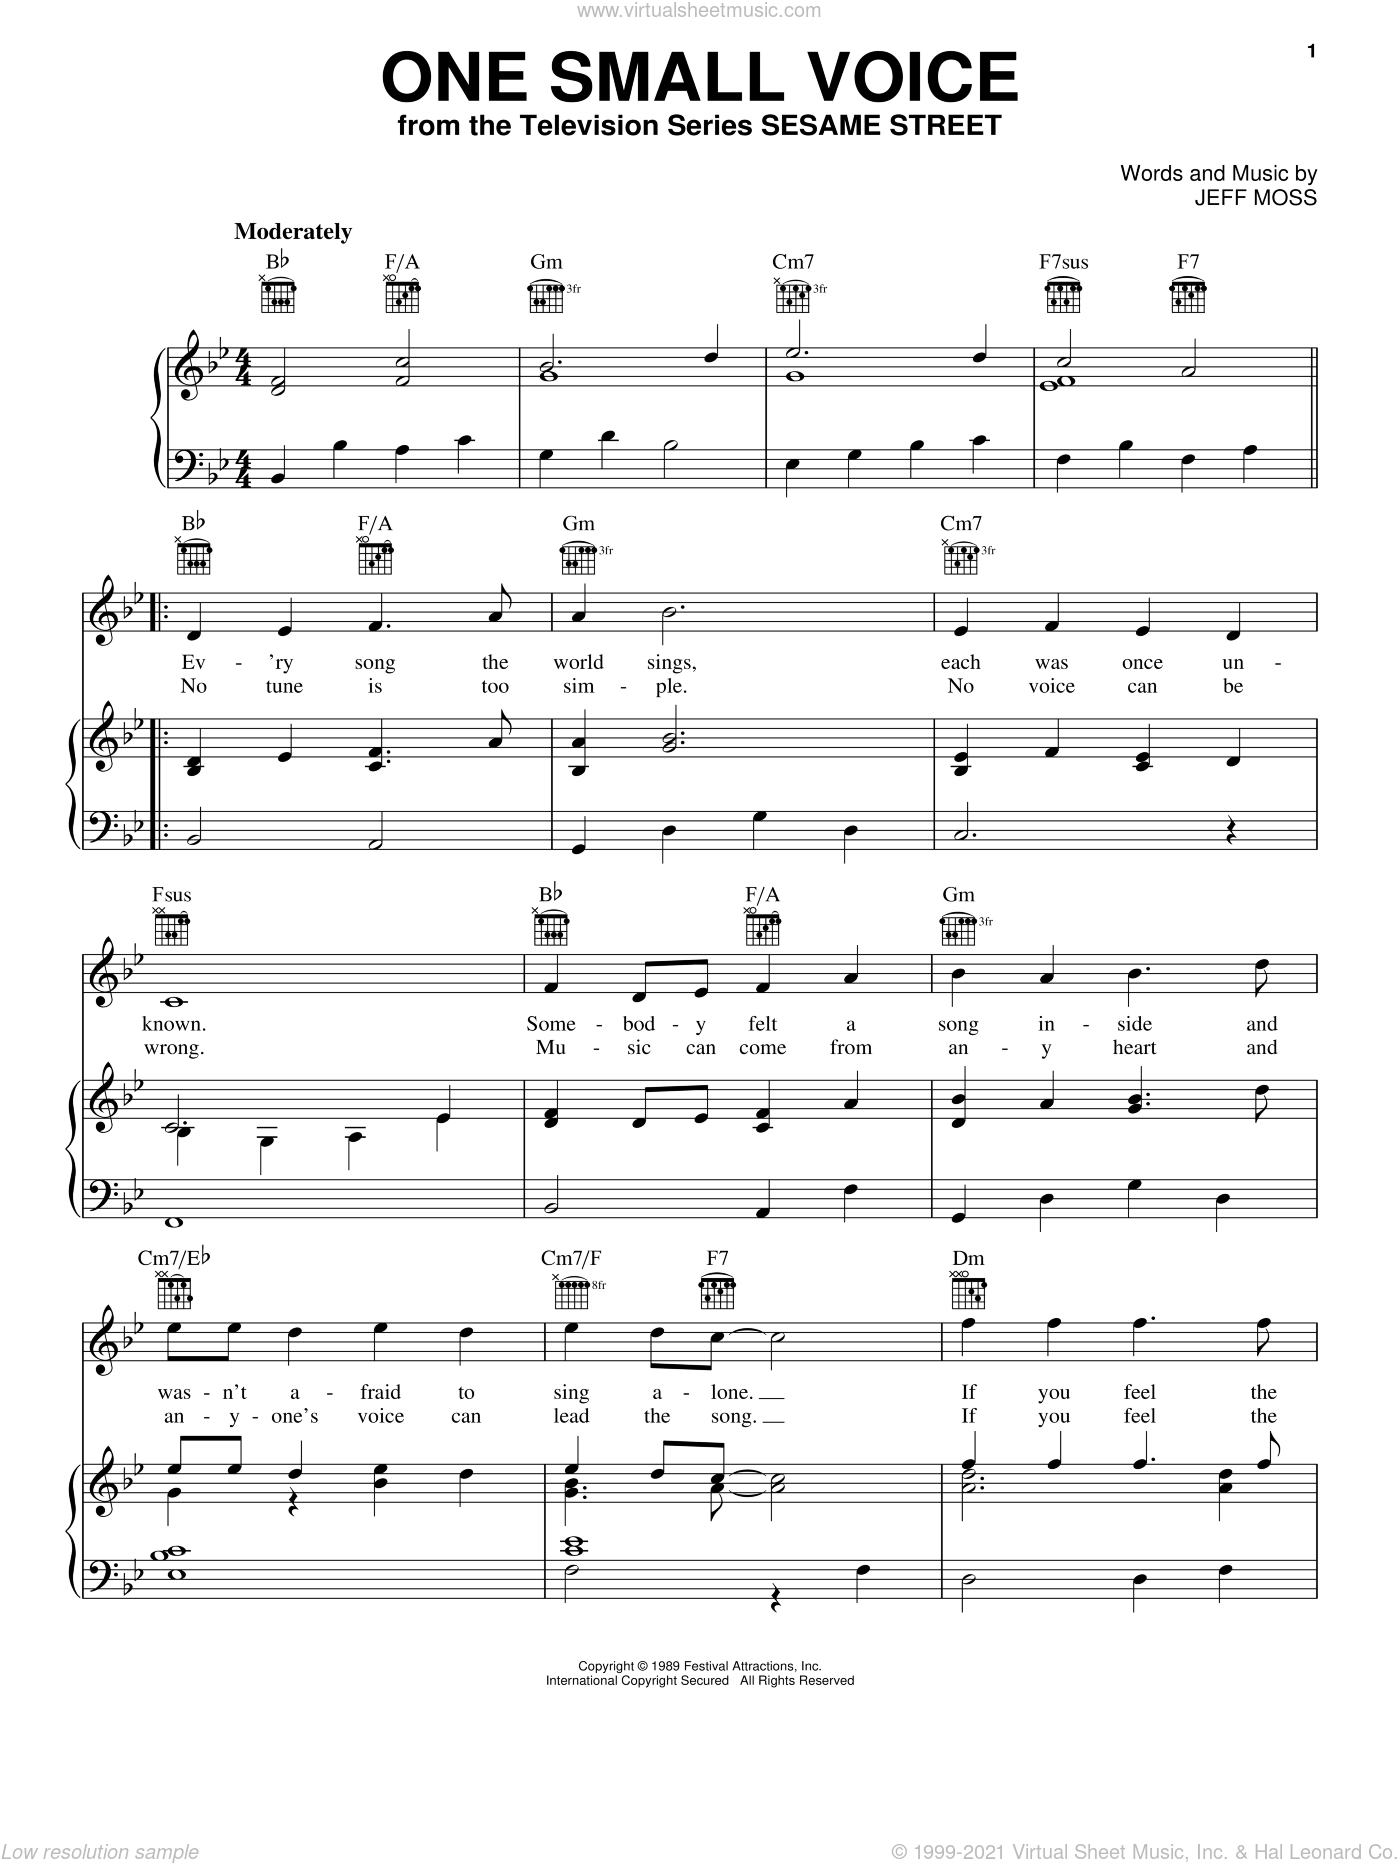 One Small Voice sheet music for voice, piano or guitar by Jeff Moss. Score Image Preview.